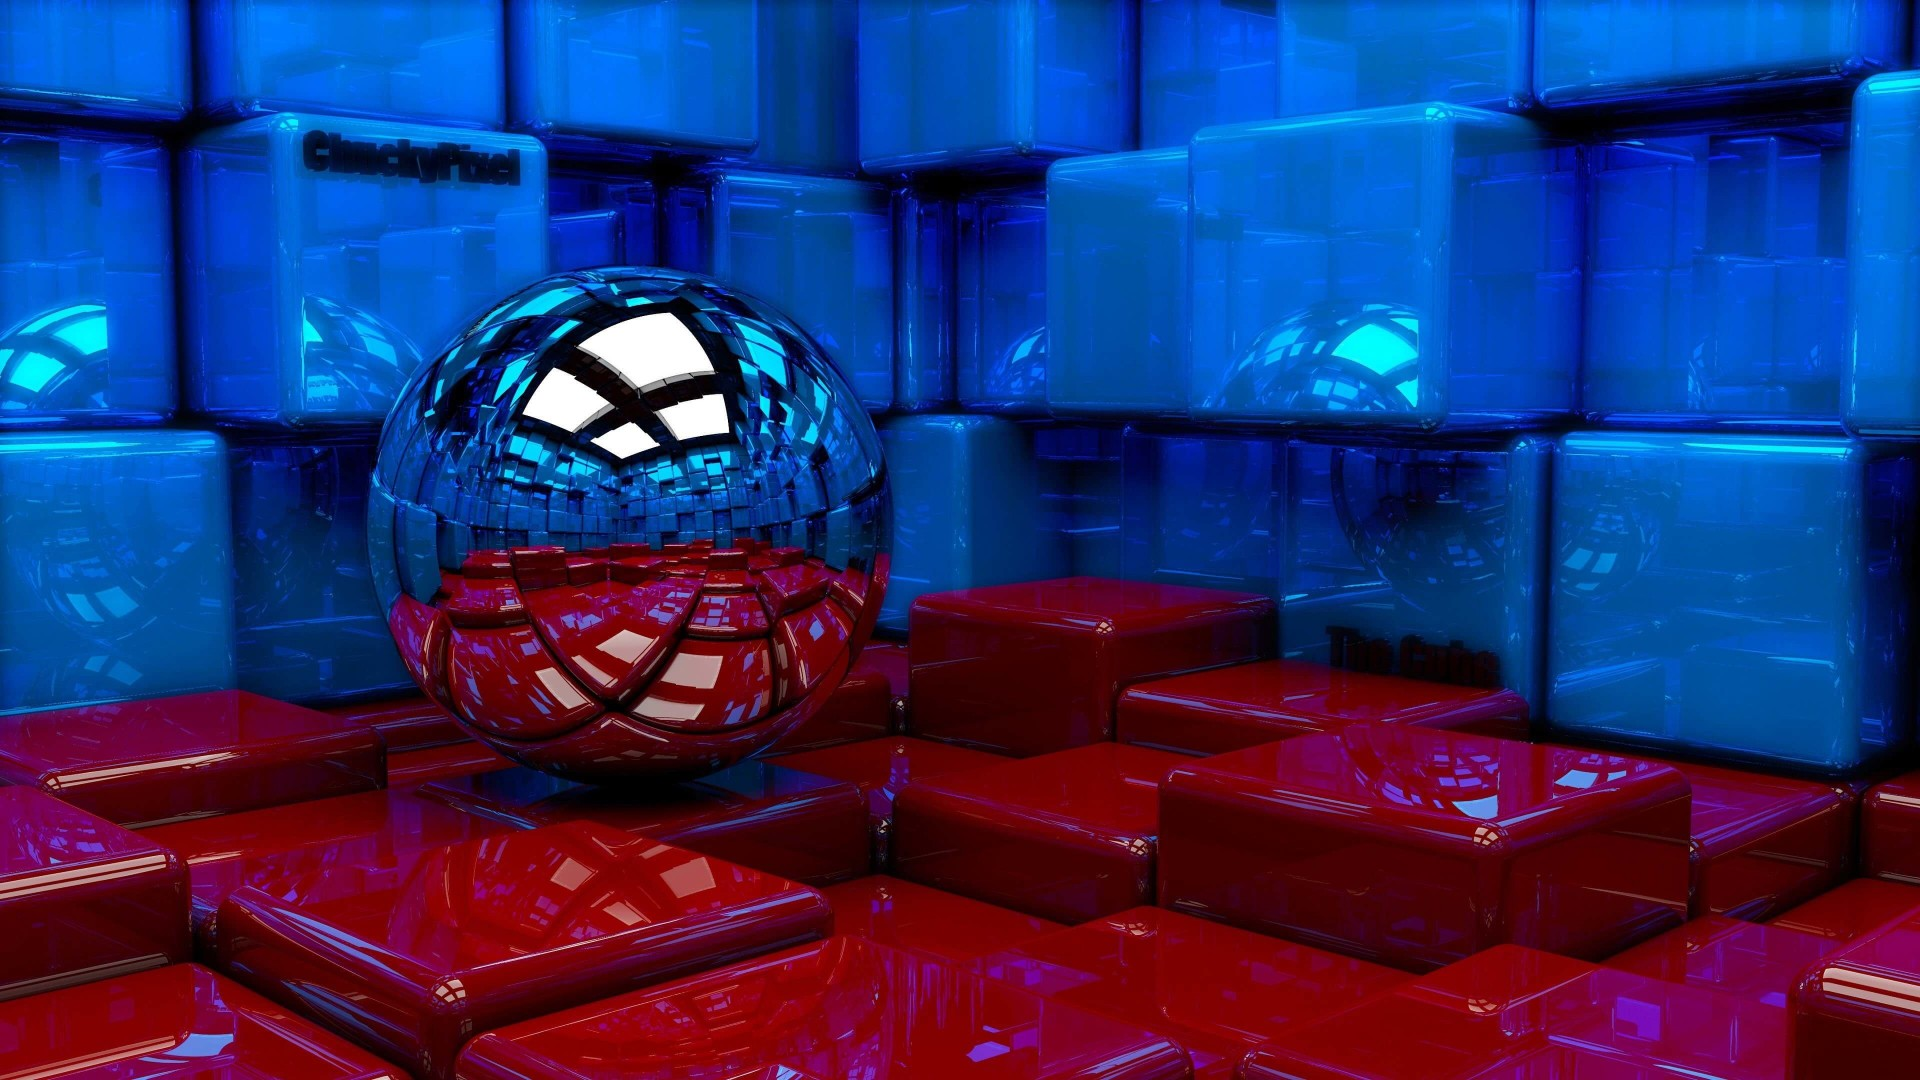 Metallic Sphere Reflecting The Cube Room Wallpaper for Desktop 1920x1080